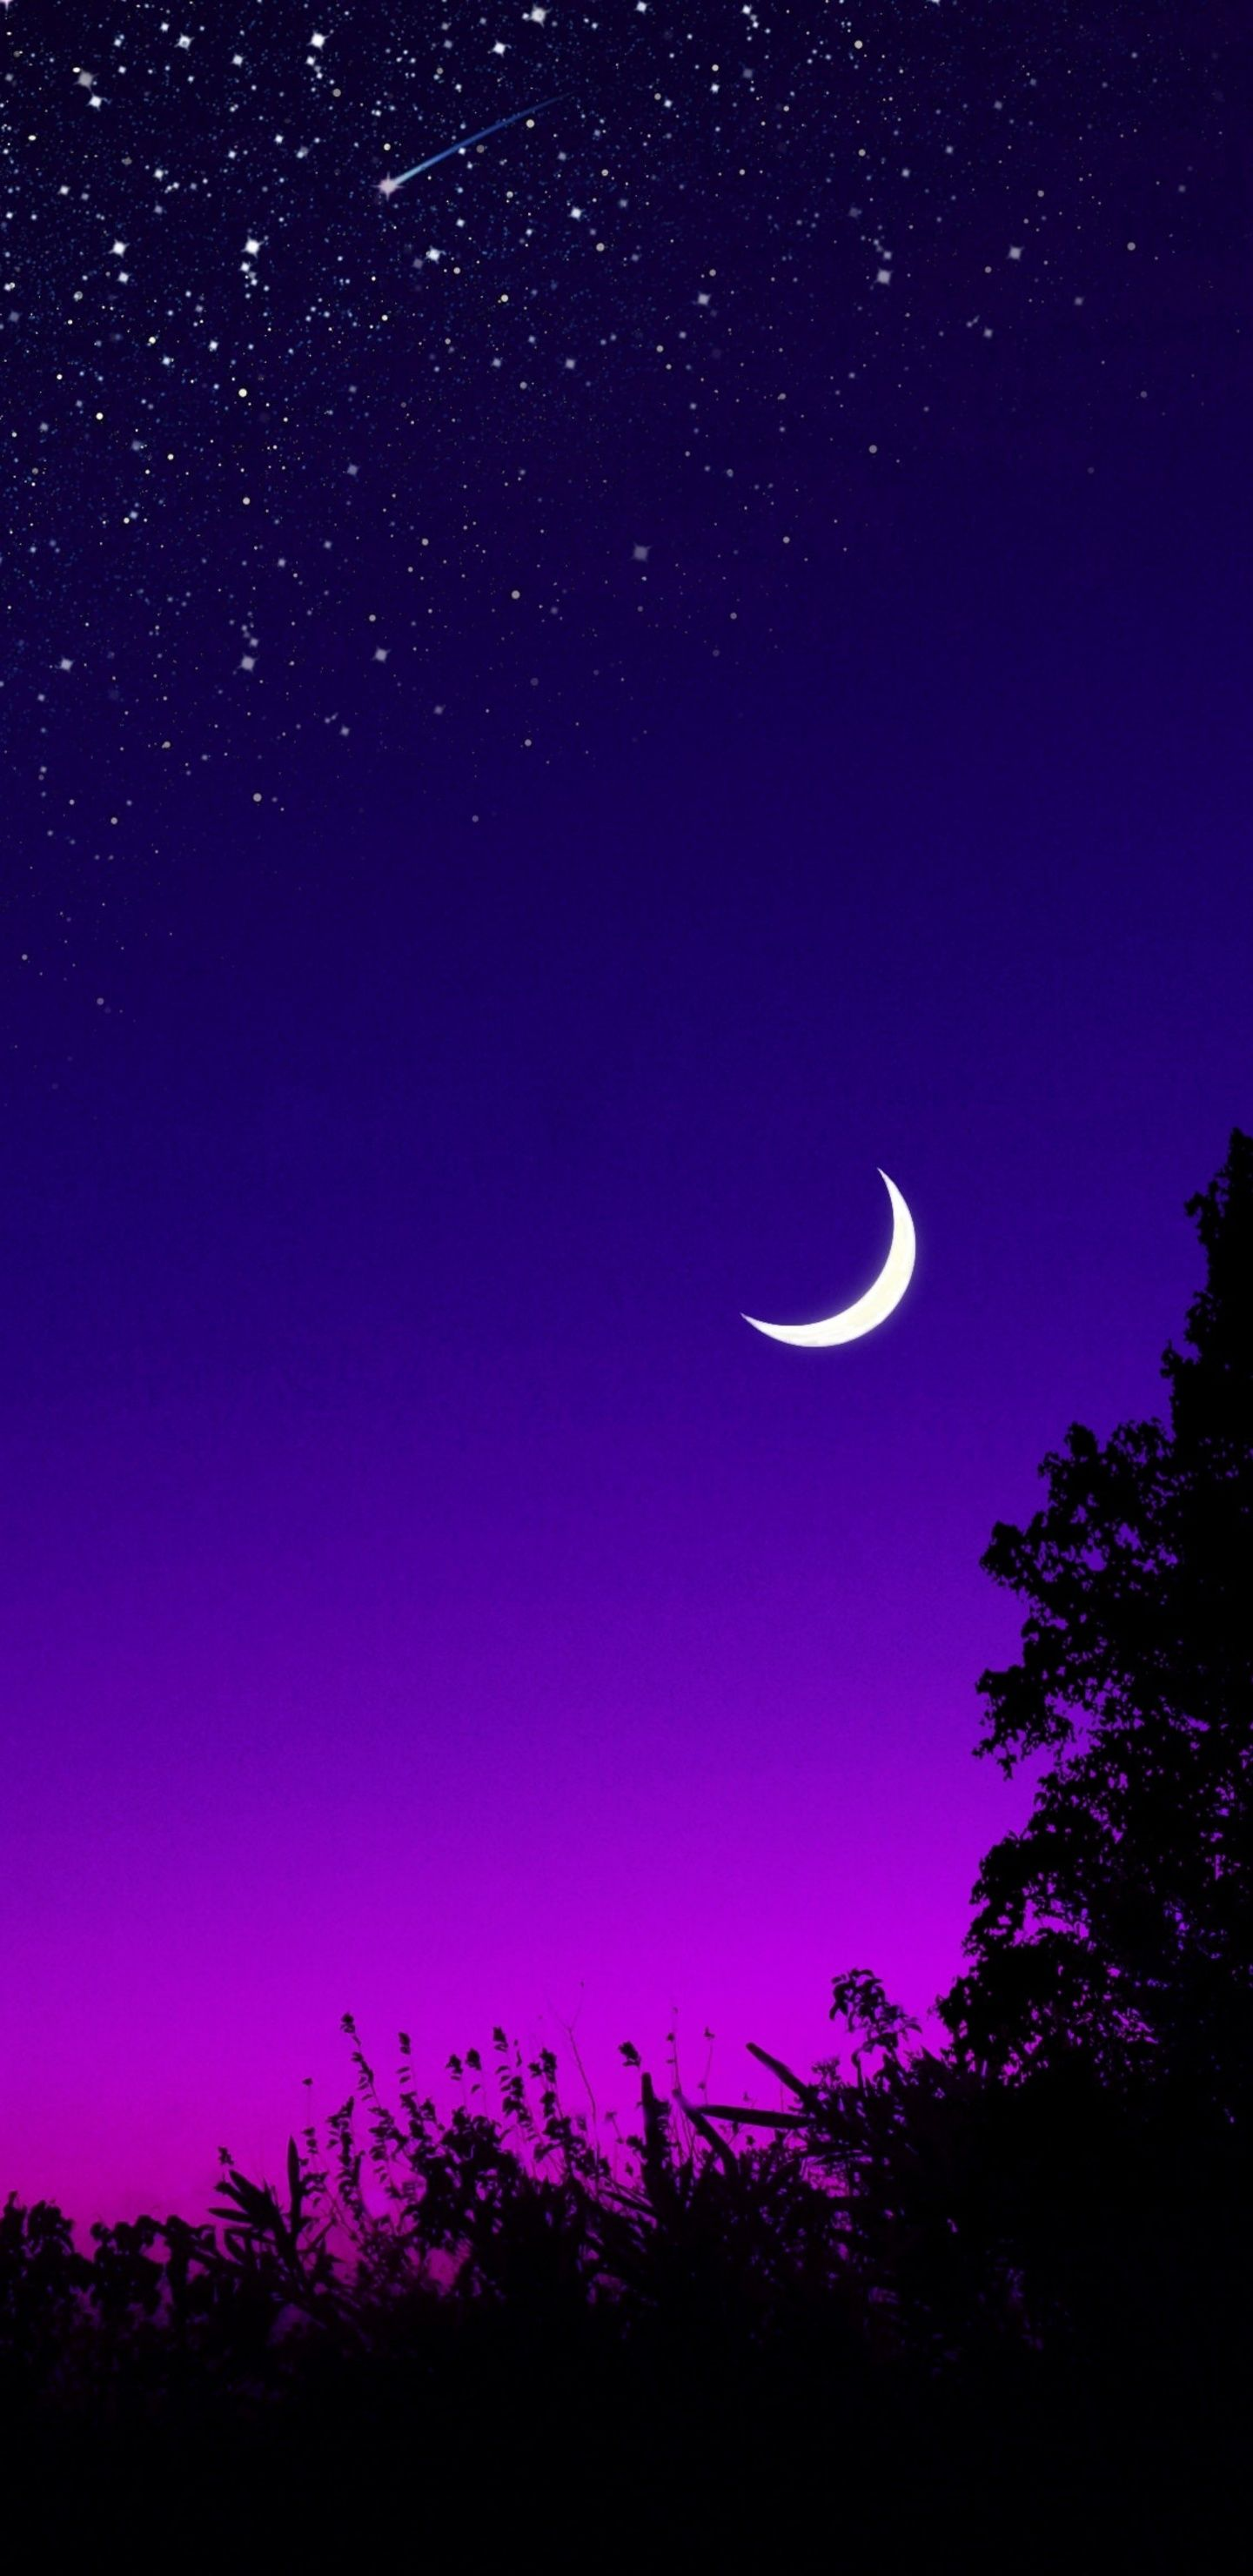 Blue And Purple Galaxy Wallpapers Top Free Blue And Purple Galaxy Backgrounds Wallpaperaccess